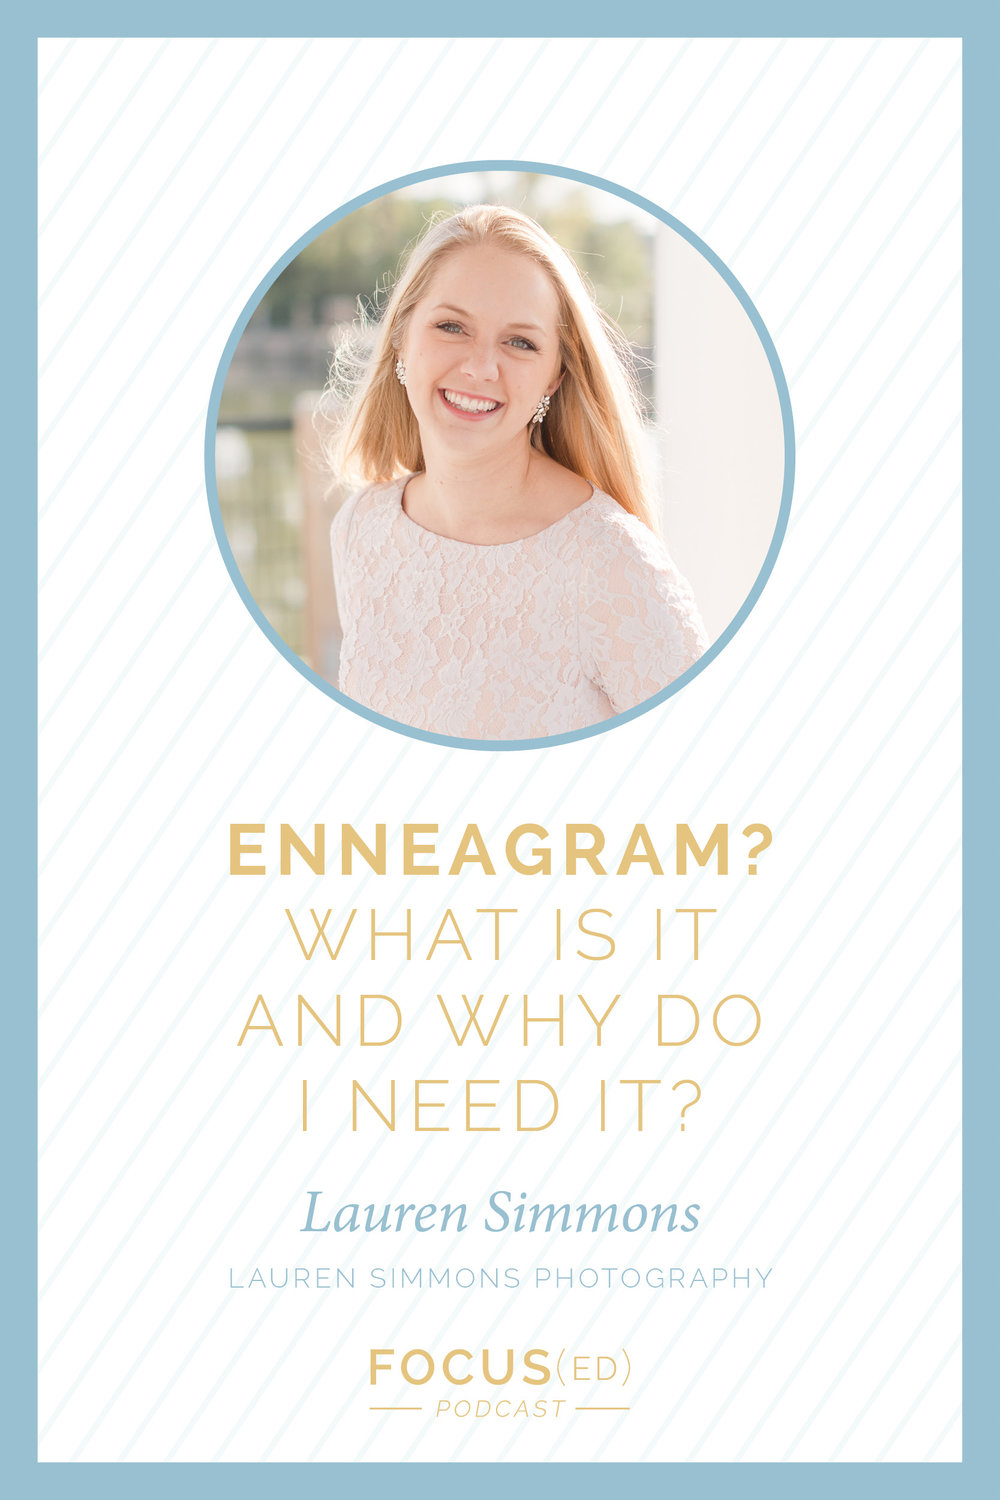 Enneagram? What is it and why do I need it? with Lauren Simmons  |  Focus(ed) Podcast 067